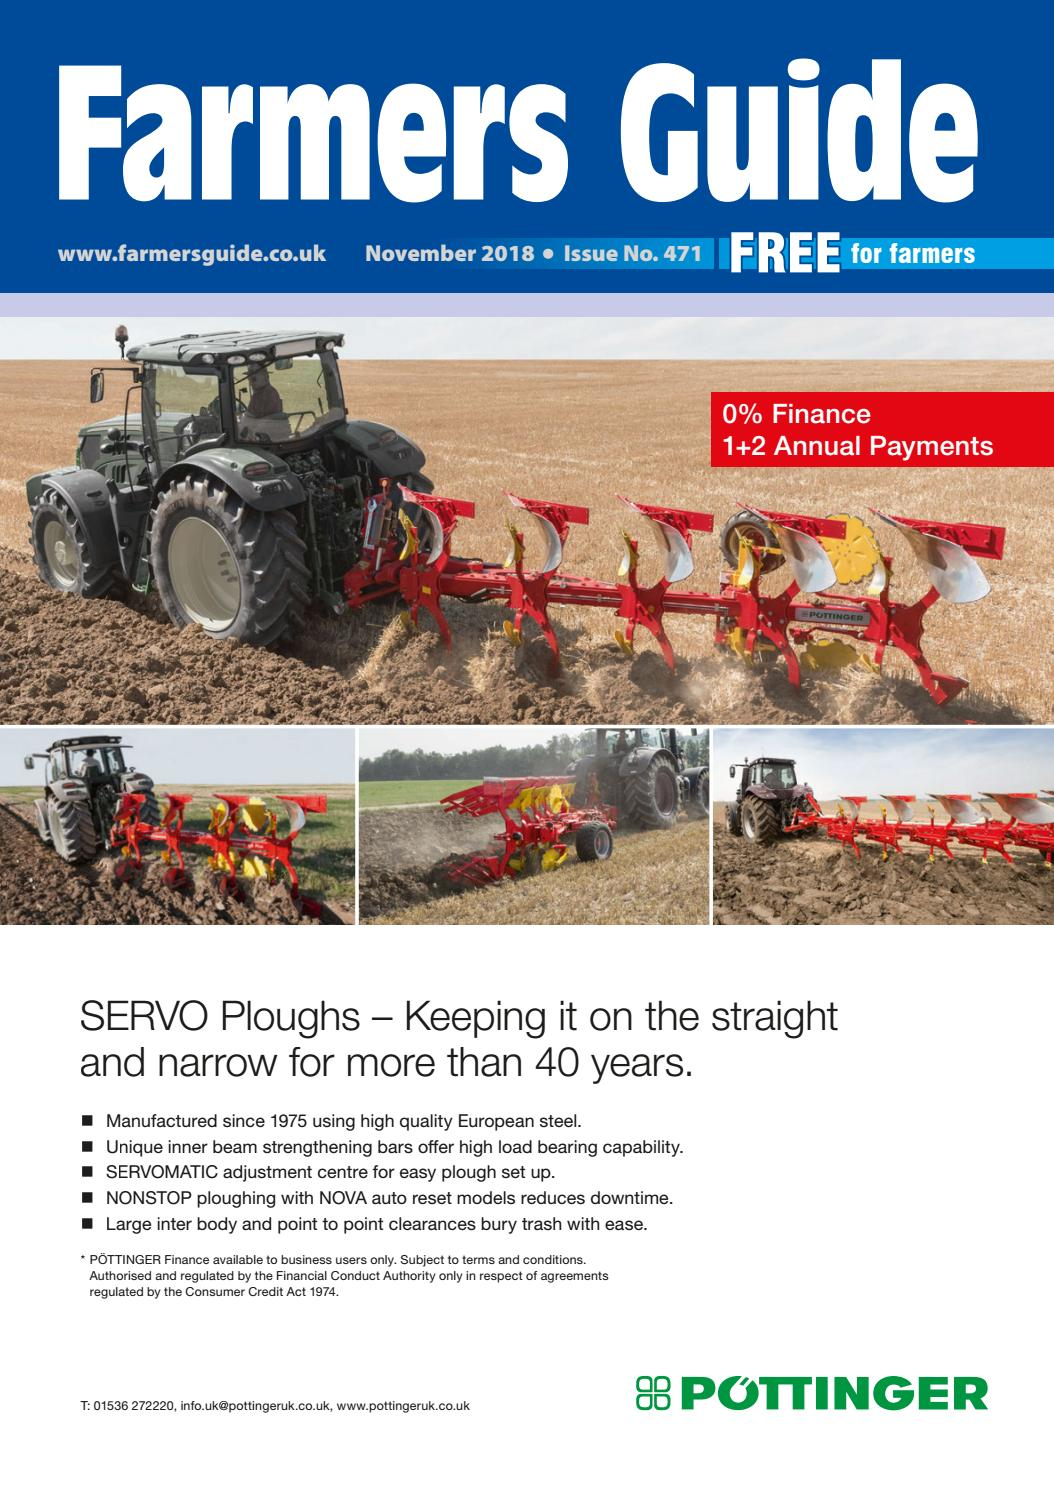 Farmers Guide November 2018 by Farmers Guide - issuu